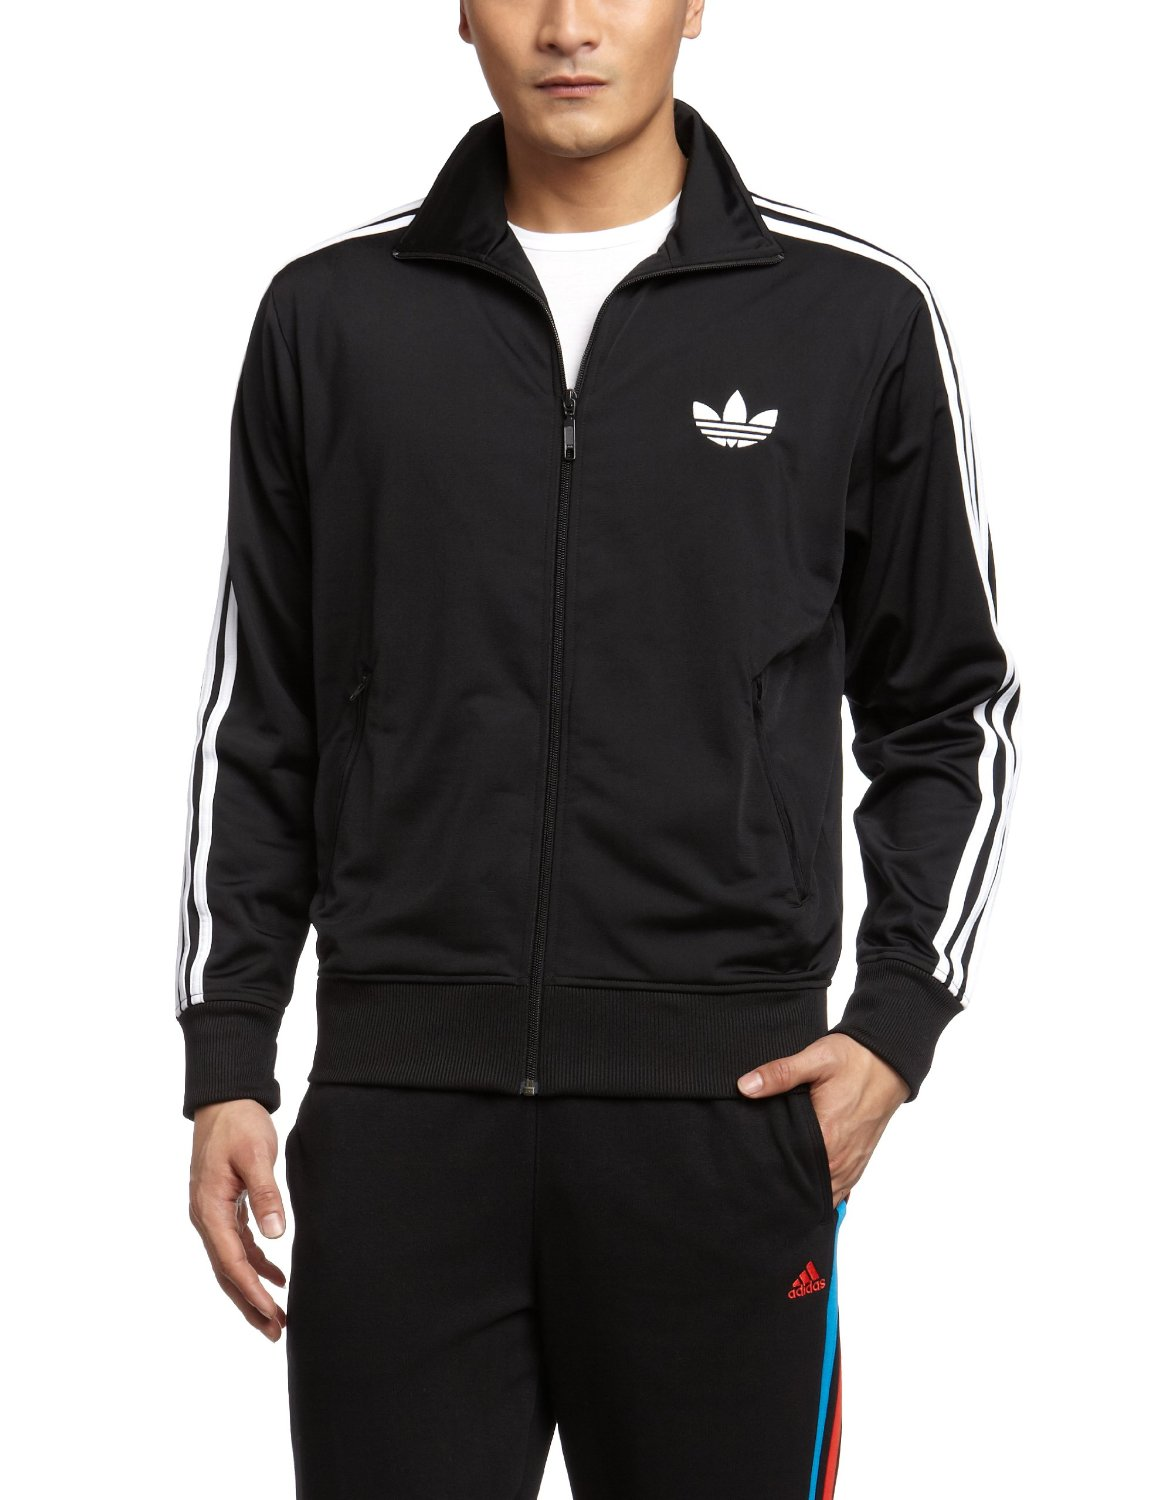 geschenkidee schwarze adidas trainingsjacke. Black Bedroom Furniture Sets. Home Design Ideas